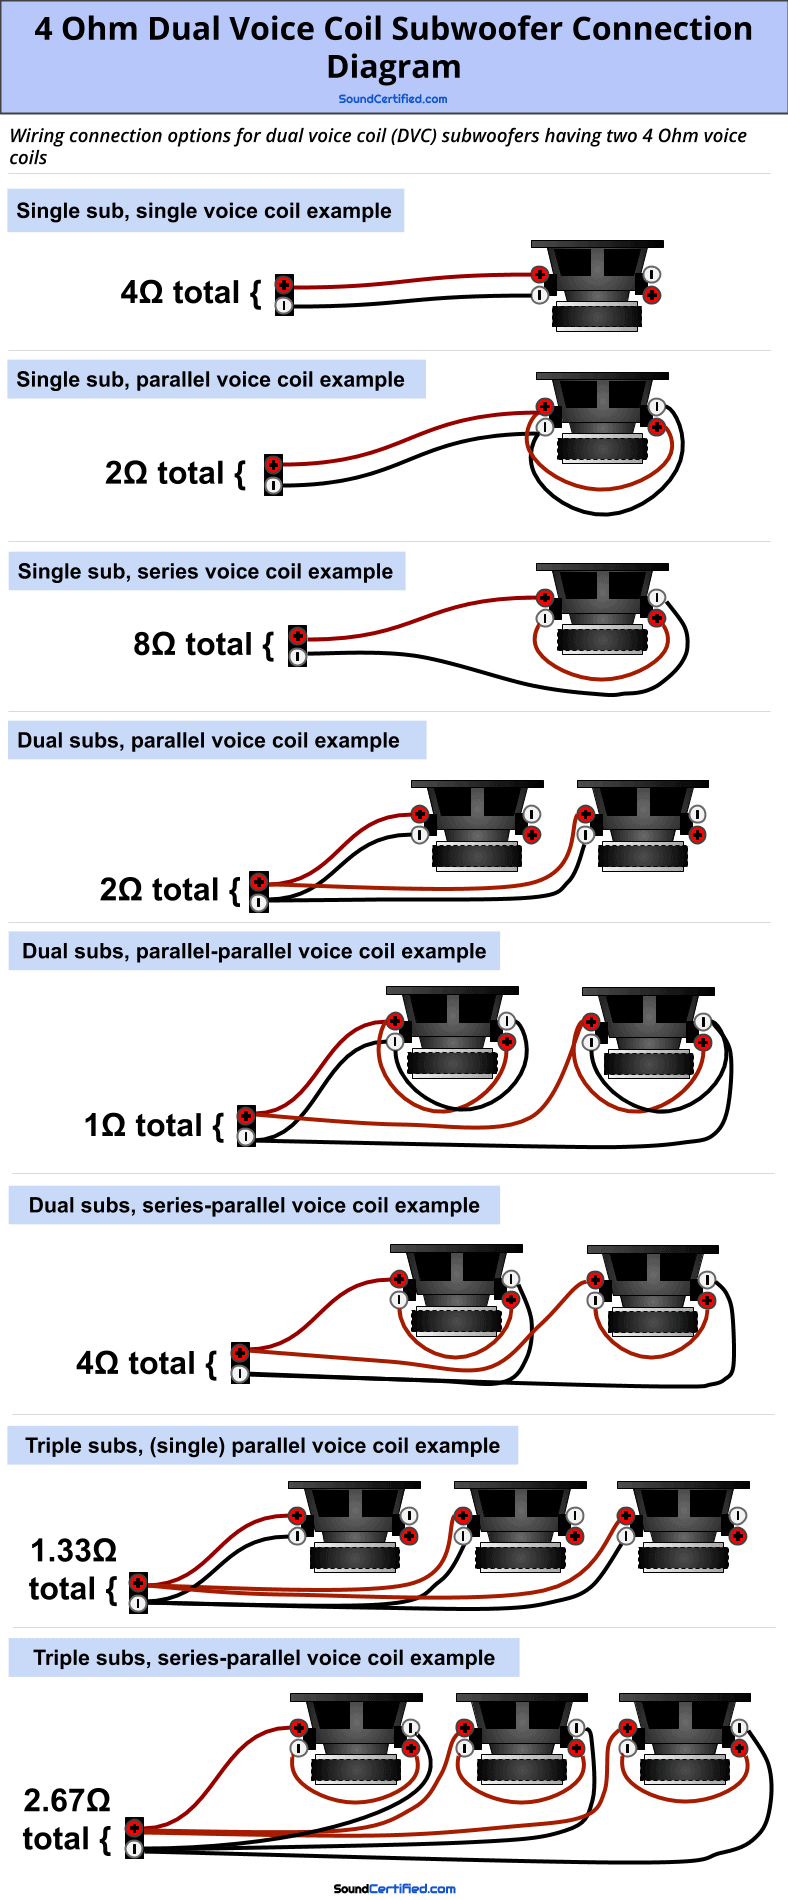 Canterbury Voice Release Wiring Diagram from soundcertified.com